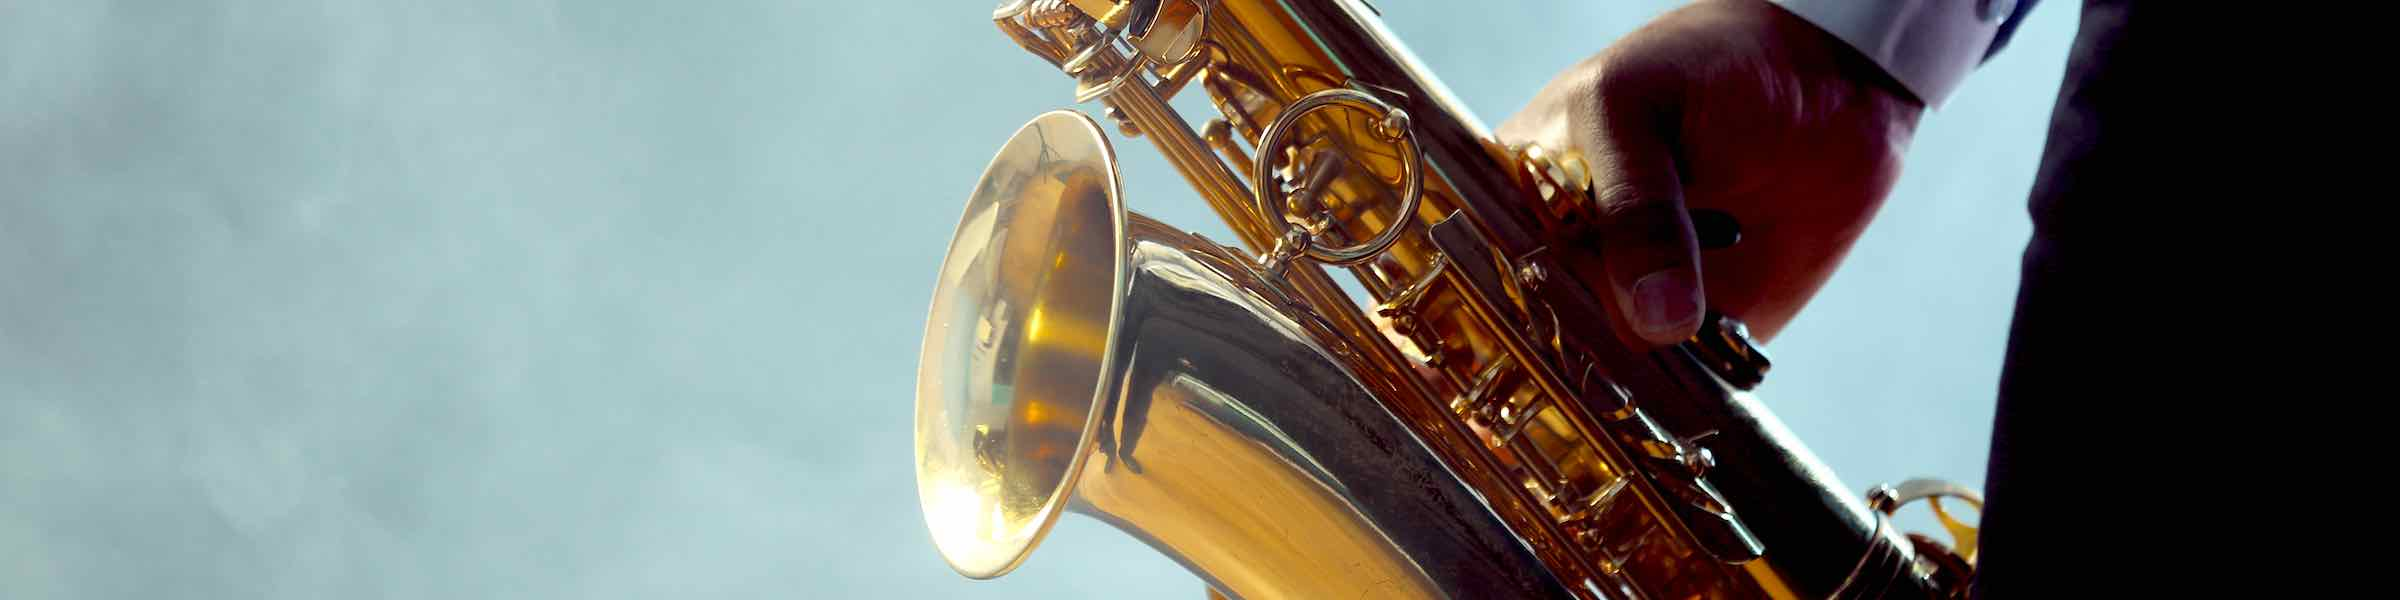 Abstracted image of a man playing a saxophone.